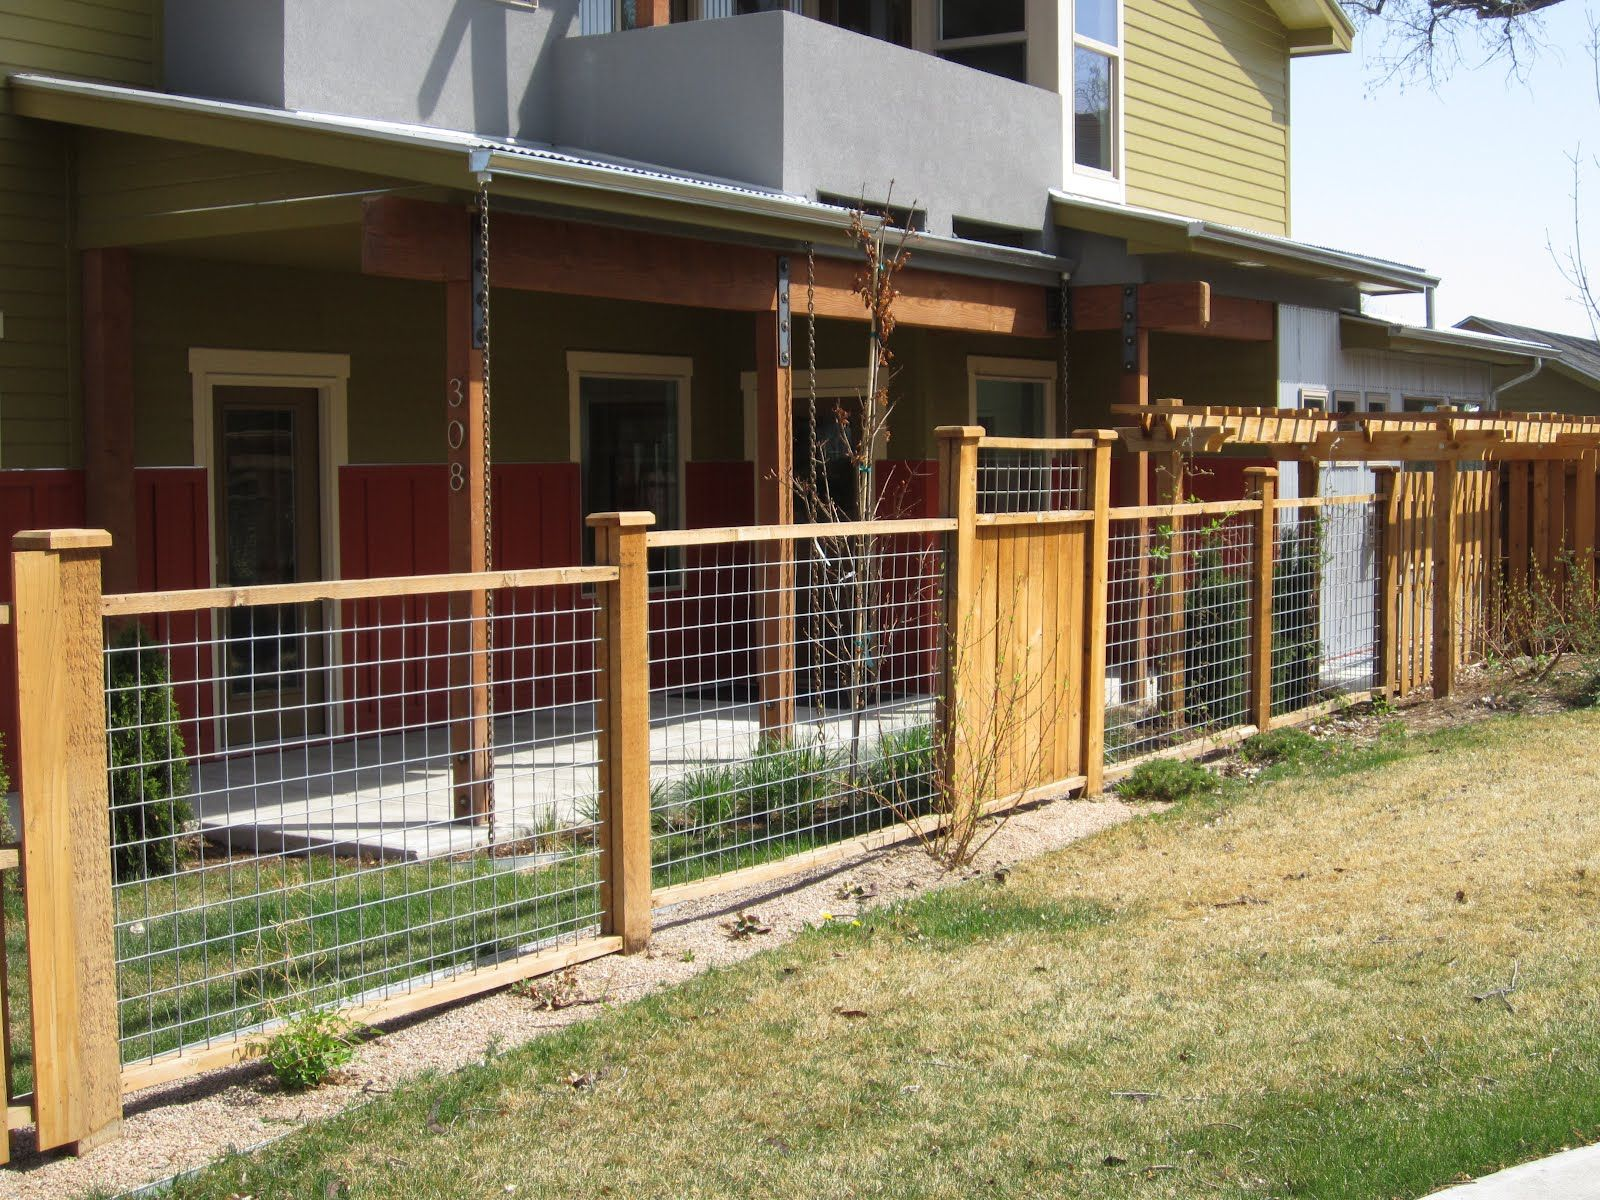 Yard+Fence+Ideas | mix of hog wire fencing and wood panels. | Fenced ...